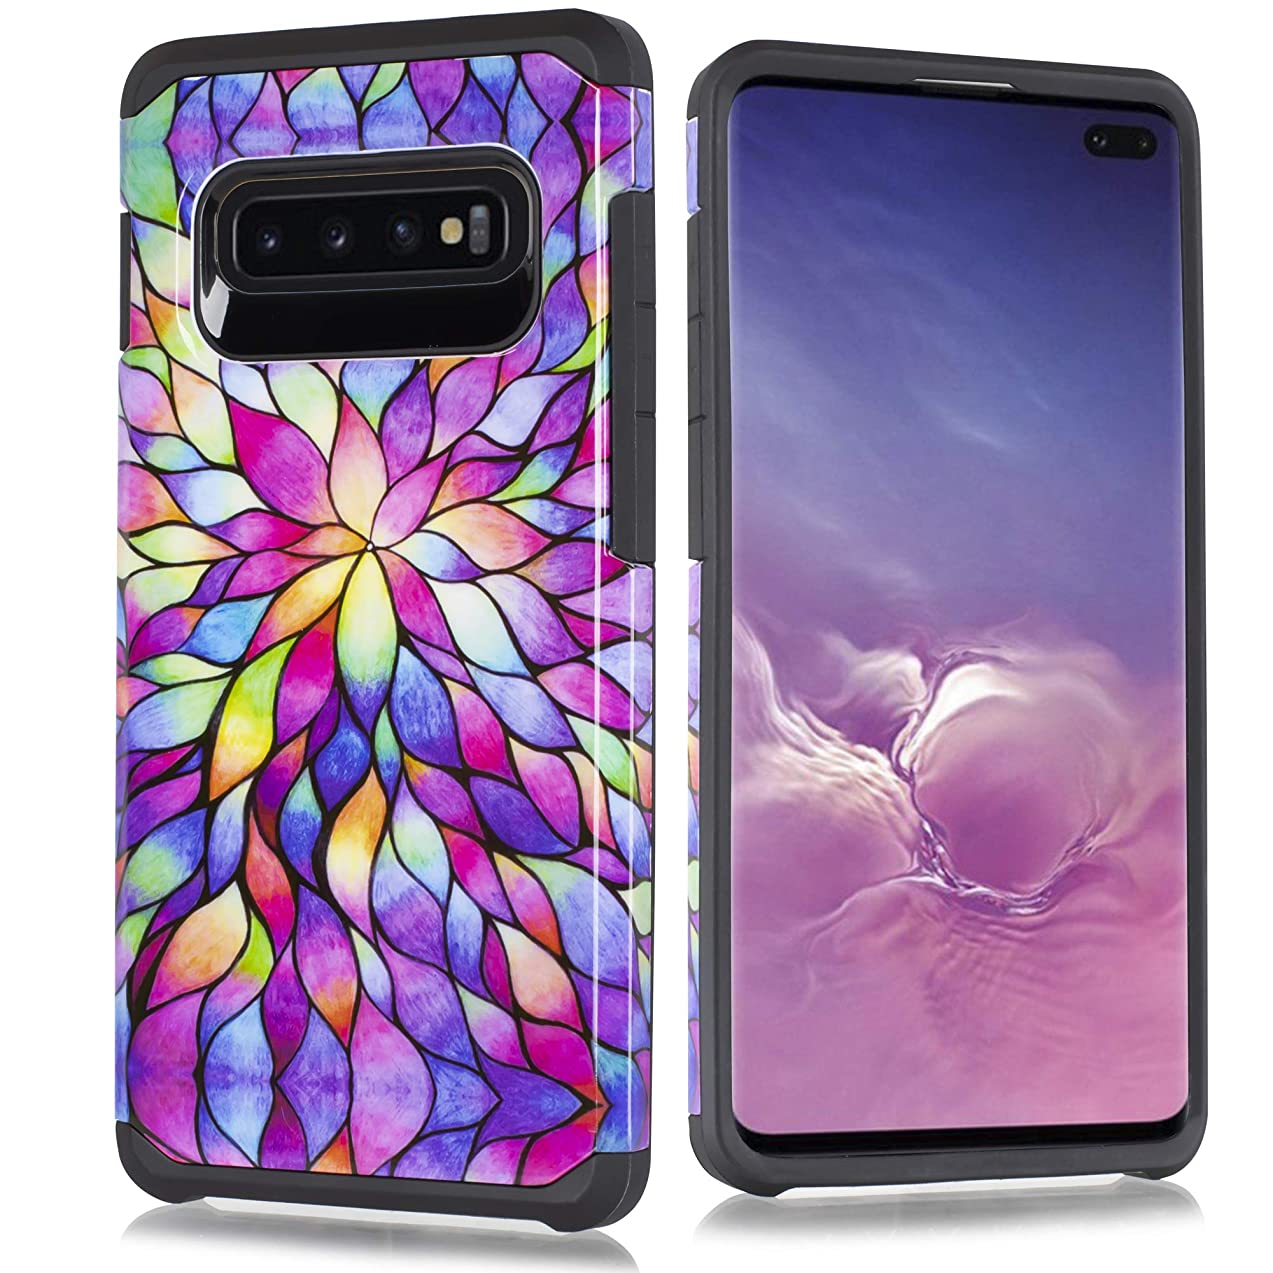 Compatible fit for Samsung Galaxy S10 Cute Heavy Duty Defender Fashion Shockproof Impact Resist Dual Layer Hybrid TPU Reinforced Galaxy STen 6.1